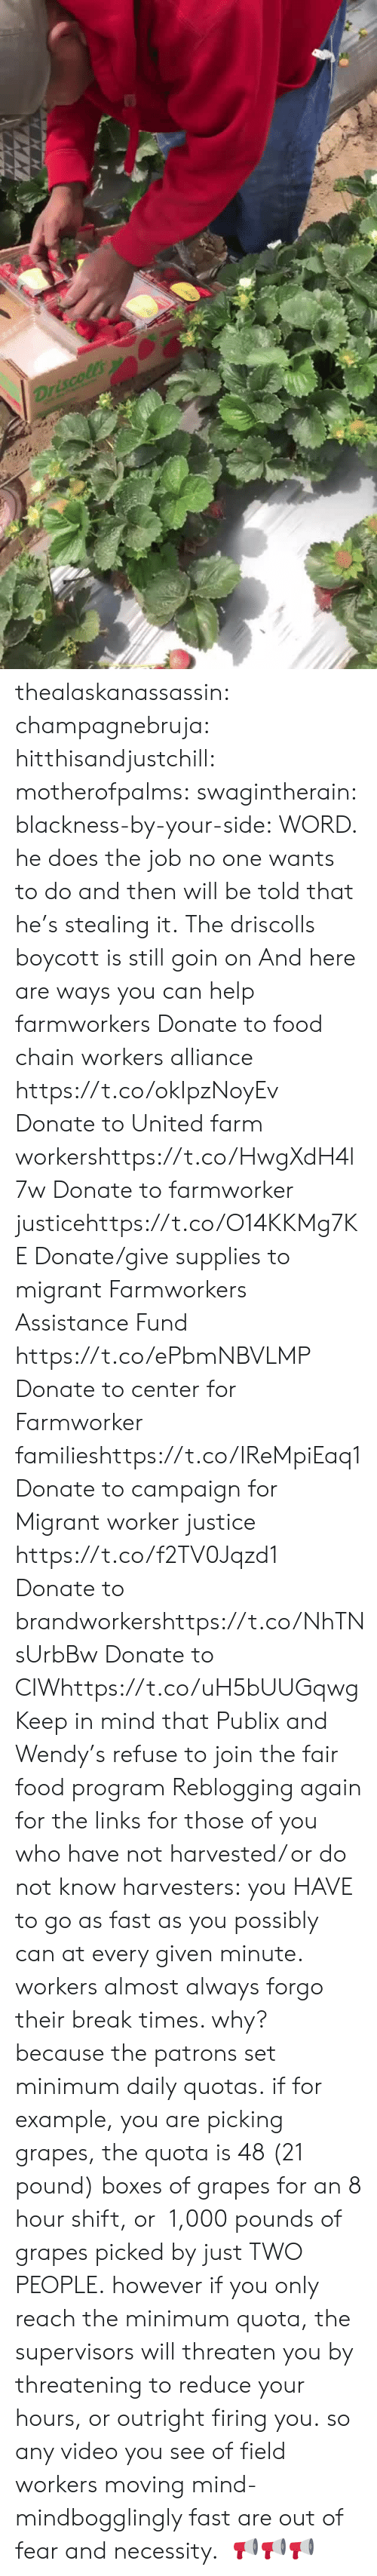 Migrant: thealaskanassassin:  champagnebruja:  hitthisandjustchill:  motherofpalms:  swagintherain:  blackness-by-your-side:  WORD.  he does the job no one wants to do and then will be told that he's stealing it.   The driscolls boycott is still goin on And here are ways you can help farmworkers Donate to food chain workers alliance  https://t.co/okIpzNoyEv Donate to United farm workershttps://t.co/HwgXdH4l7w Donate to farmworker justicehttps://t.co/O14KKMg7KE Donate/give supplies to migrant Farmworkers Assistance Fund https://t.co/ePbmNBVLMP Donate to center for Farmworker familieshttps://t.co/IReMpiEaq1 Donate to campaign for Migrant worker justice https://t.co/f2TV0Jqzd1 Donate to brandworkershttps://t.co/NhTNsUrbBw Donate to CIWhttps://t.co/uH5bUUGqwg Keep in mind that Publix and Wendy's   refuse to join the fair food program   Reblogging again for the links  for those of you who have not harvested/ or do not know harvesters: you HAVE to go as fast as you possibly can at every given minute. workers almost always forgo their break times. why? because the patrons set minimum daily quotas. if for example, you are picking grapes, the quota is 48 (21 pound) boxes of grapes for an 8 hour shift, or 1,000 pounds of grapes picked by just TWO PEOPLE.however if you only reach the minimum quota, the supervisors will threaten you by threatening to reduce your hours, or outright firing you. so any video you see of field workers moving mind-mindbogglingly fast are out of fear and necessity.   📢📢📢